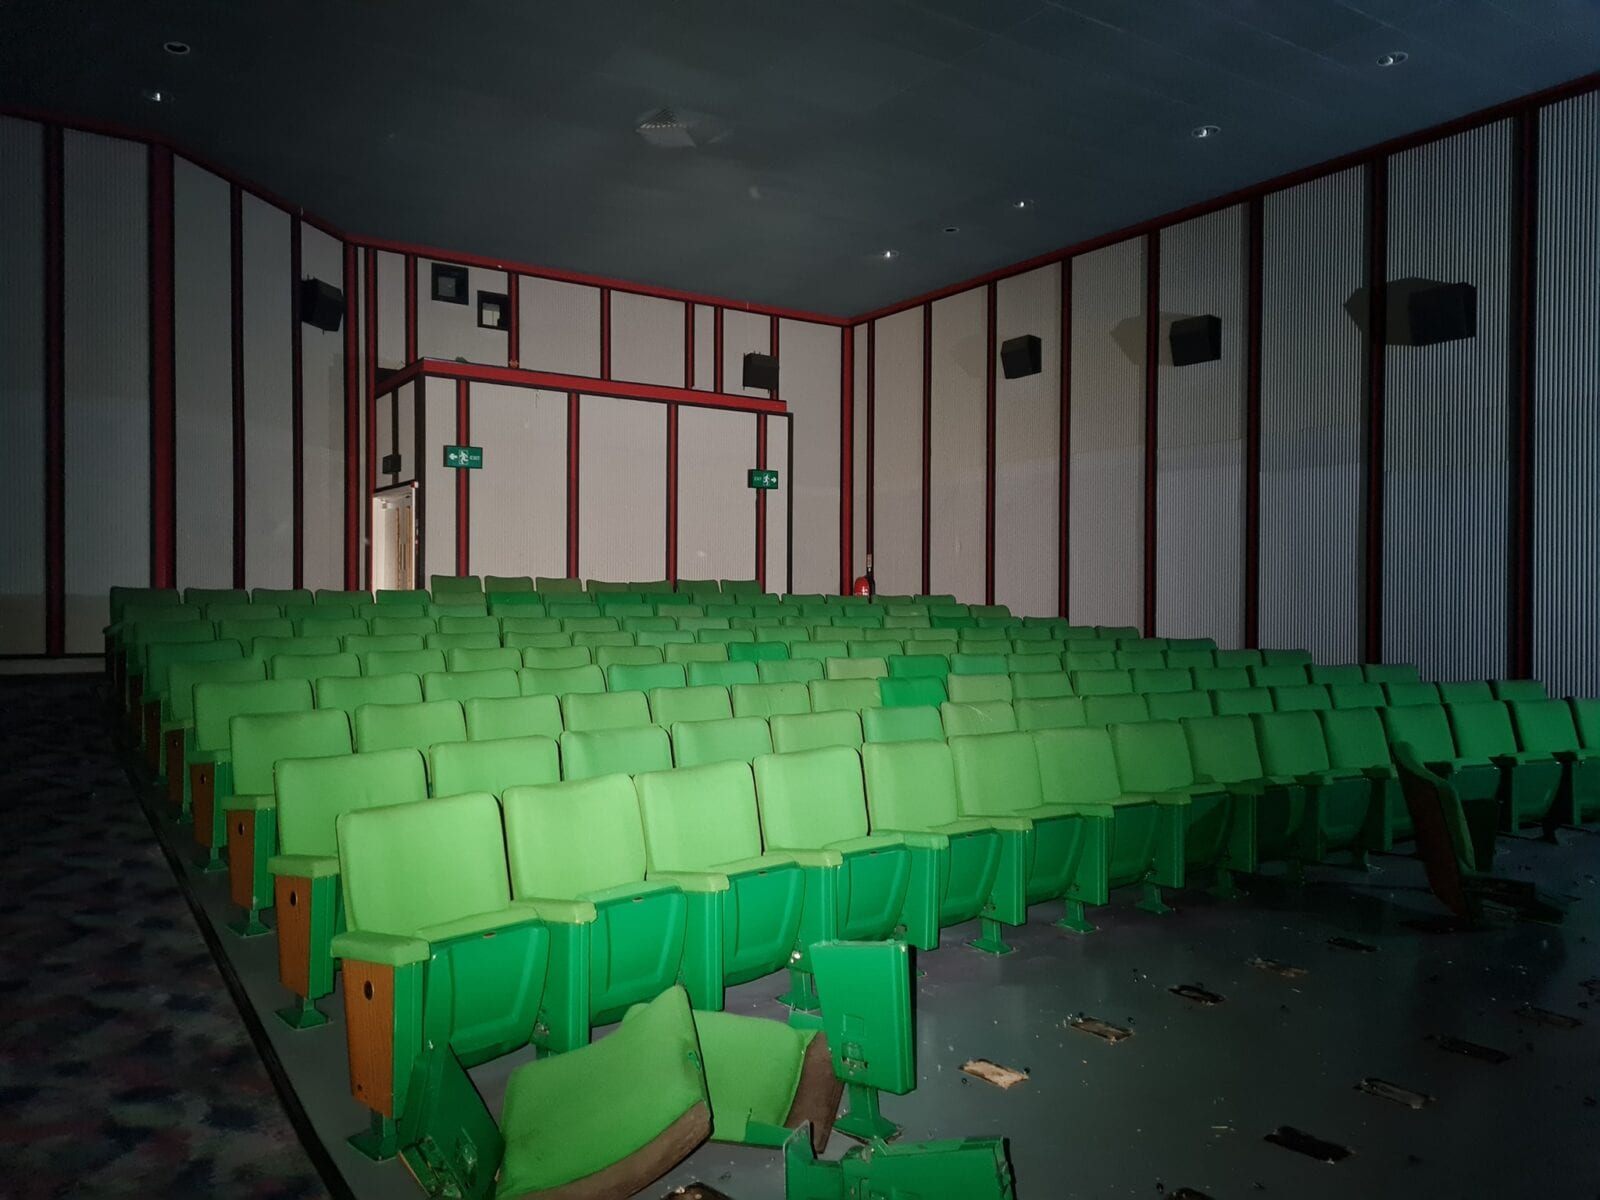 These eerie photos show Manchester's iconic Showcase Cinema looking very different nowadays, The Manc